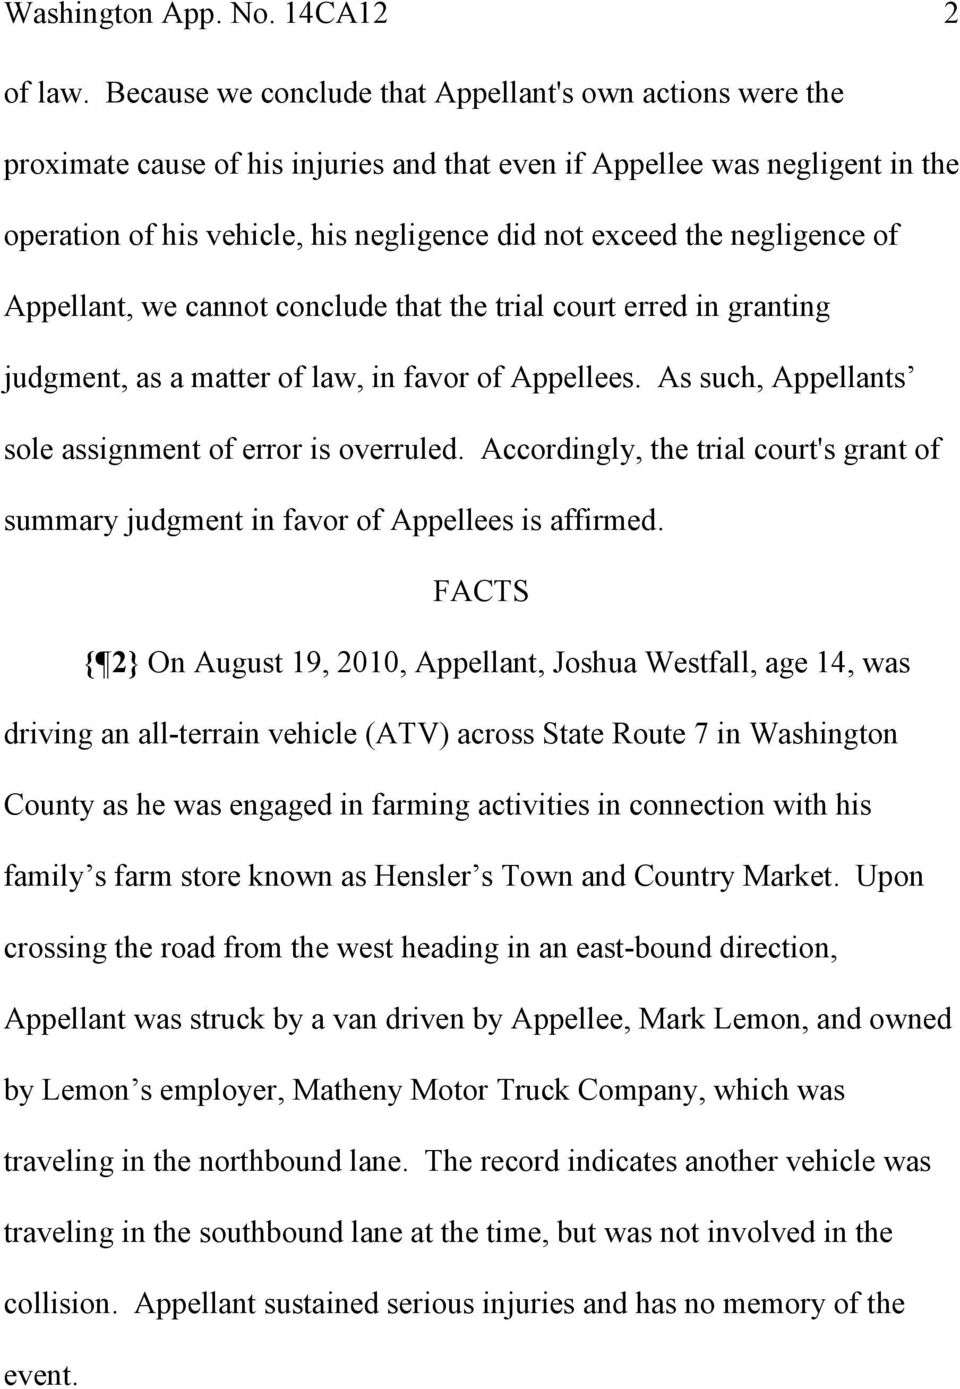 negligence of Appellant, we cannot conclude that the trial court erred in granting judgment, as a matter of law, in favor of Appellees. As such, Appellants sole assignment of error is overruled.